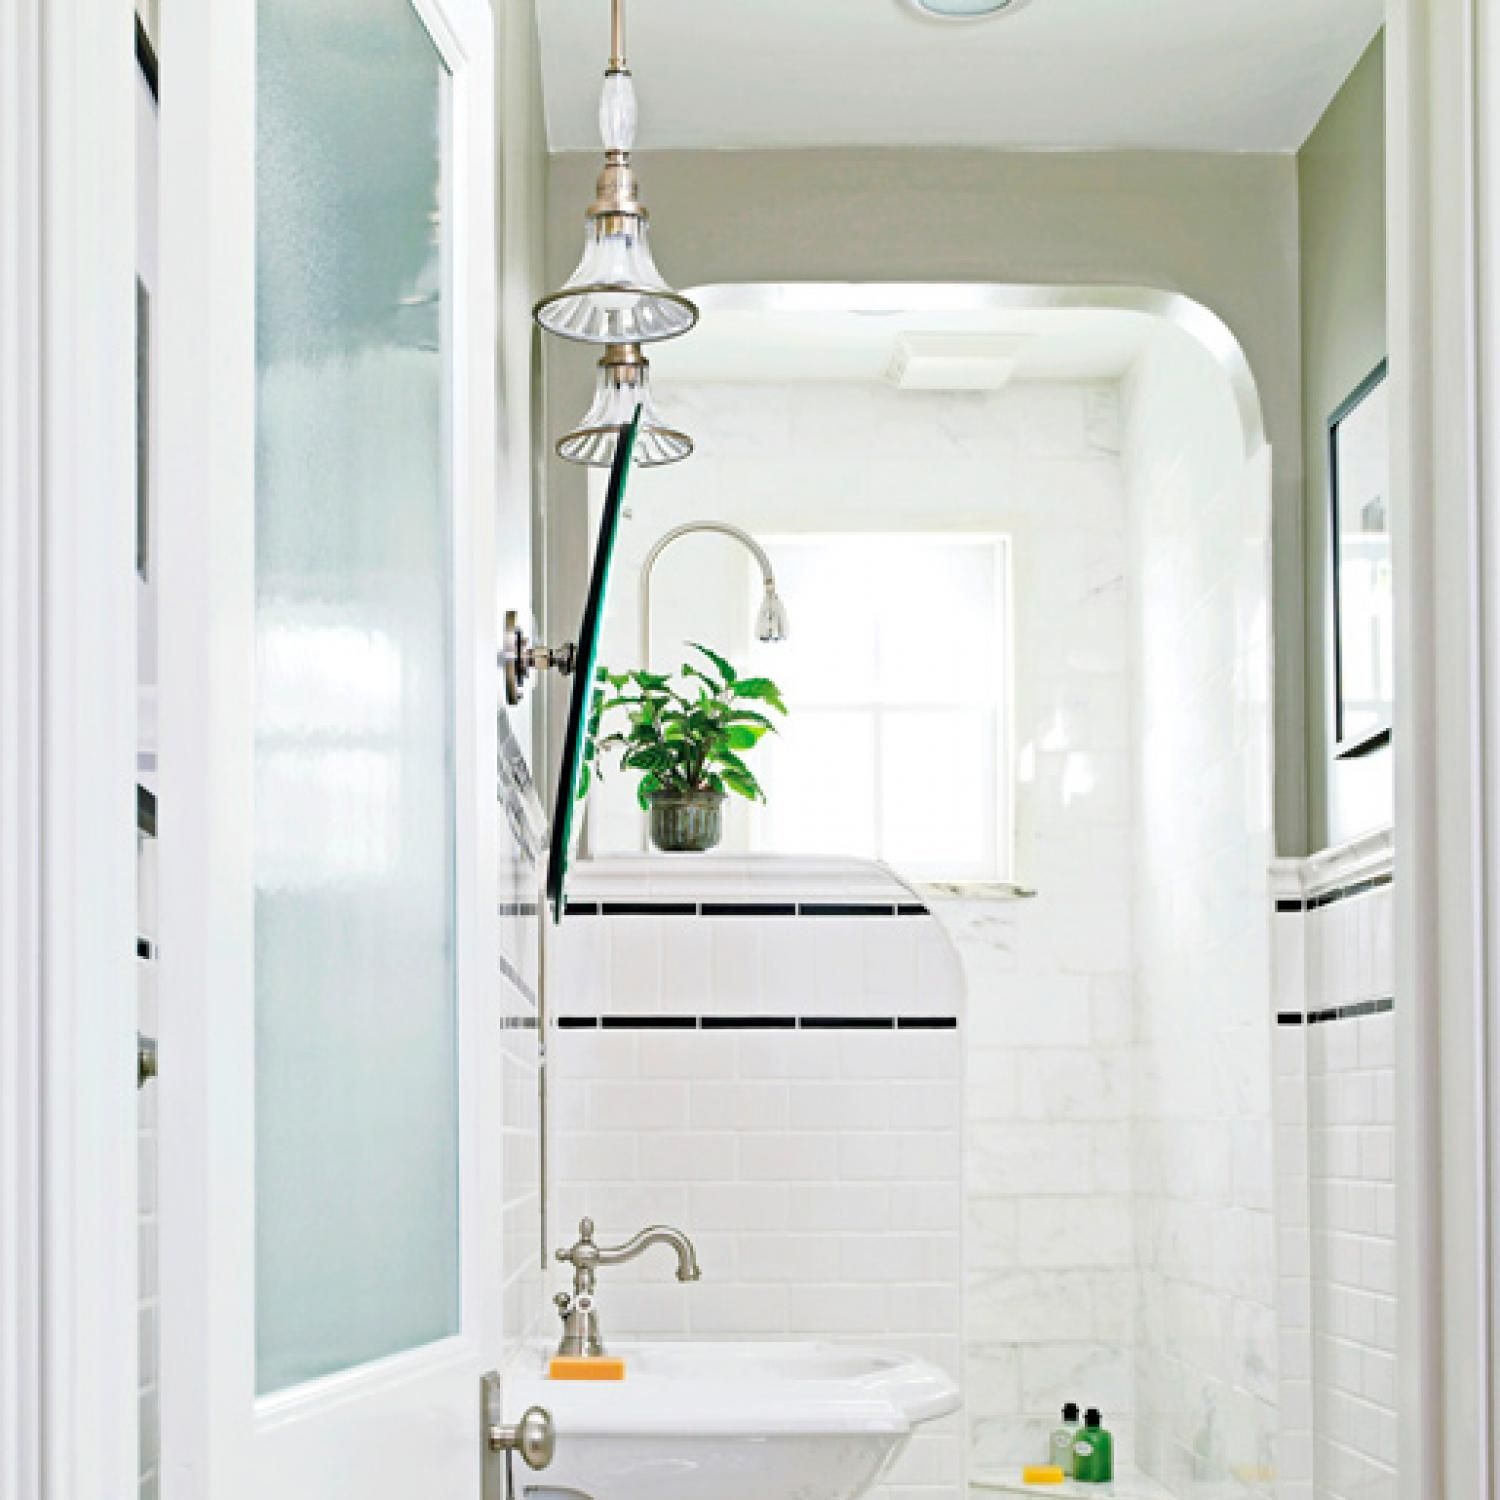 Beau Check Out These Stylish Storage Ideas For Keeping A Small Bathroom Or  Powder Room Organized And Efficient